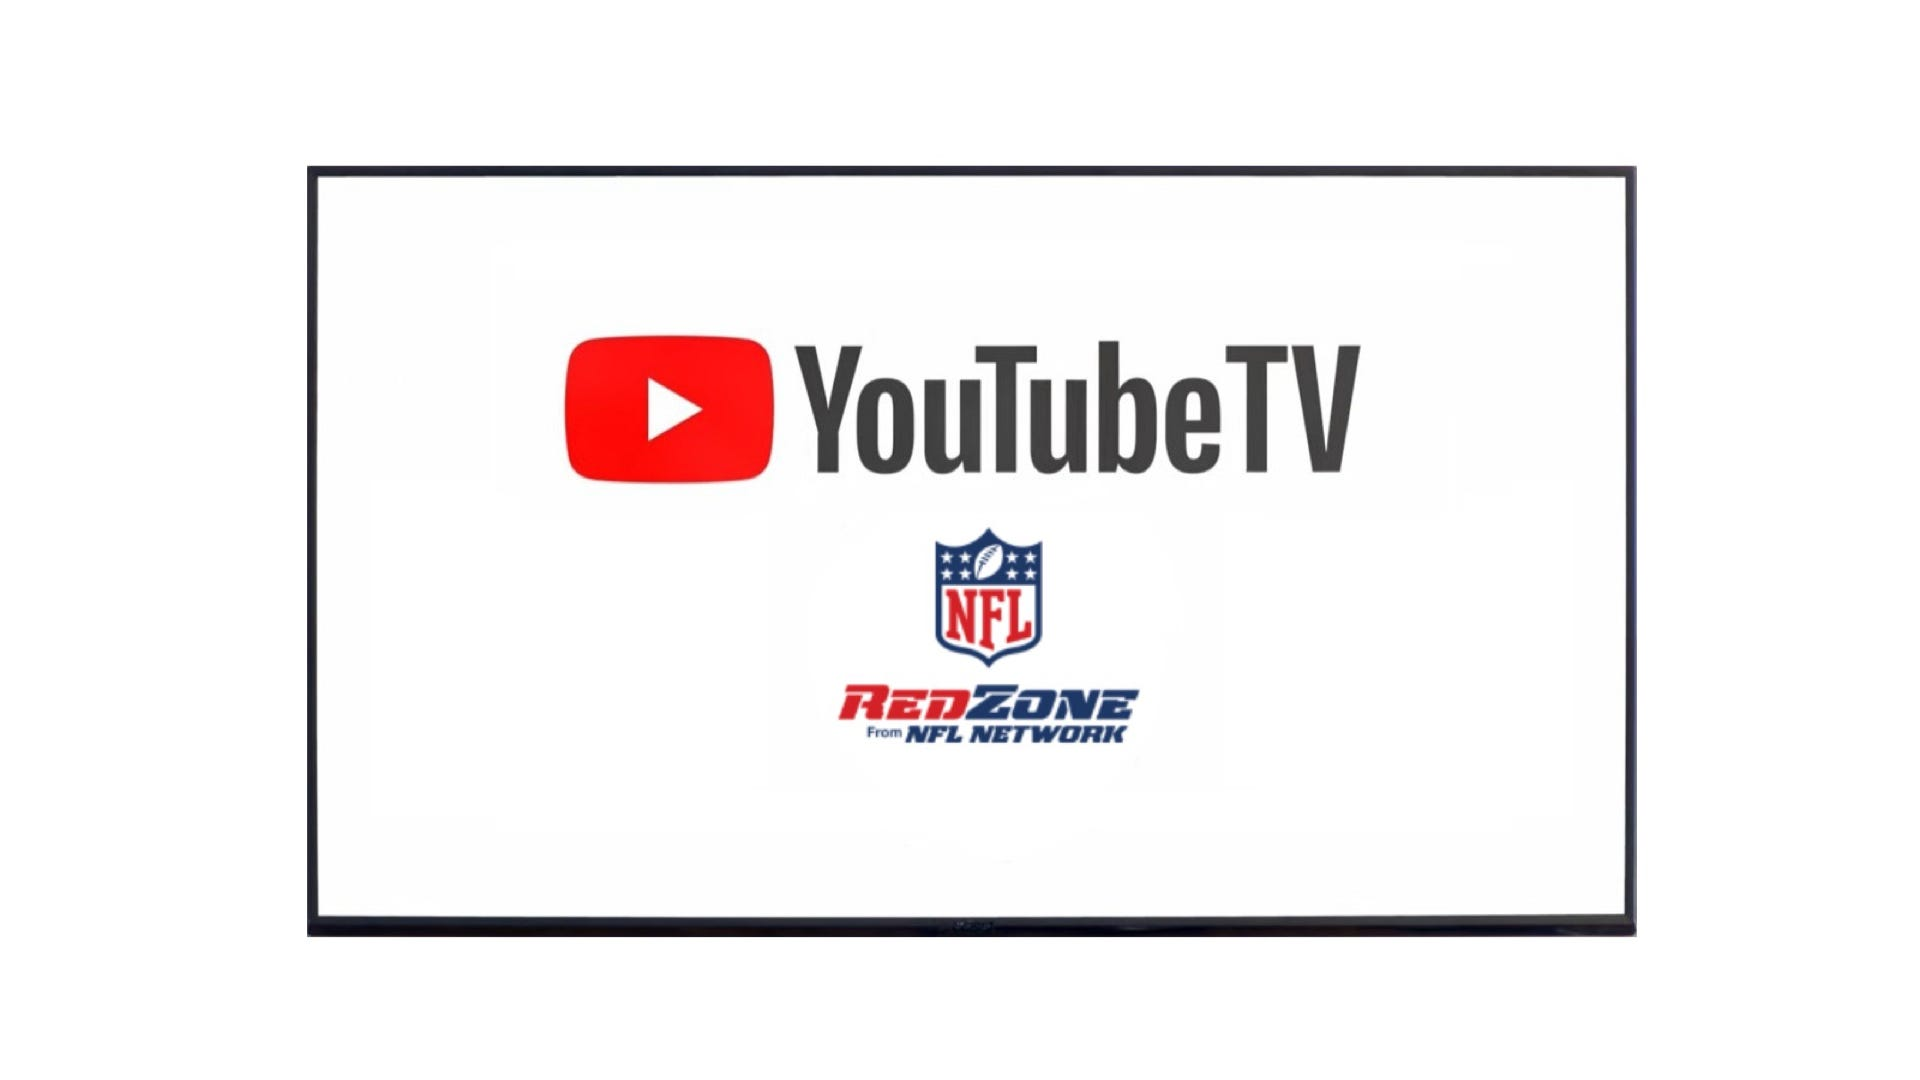 Youtube TV with NFL Network